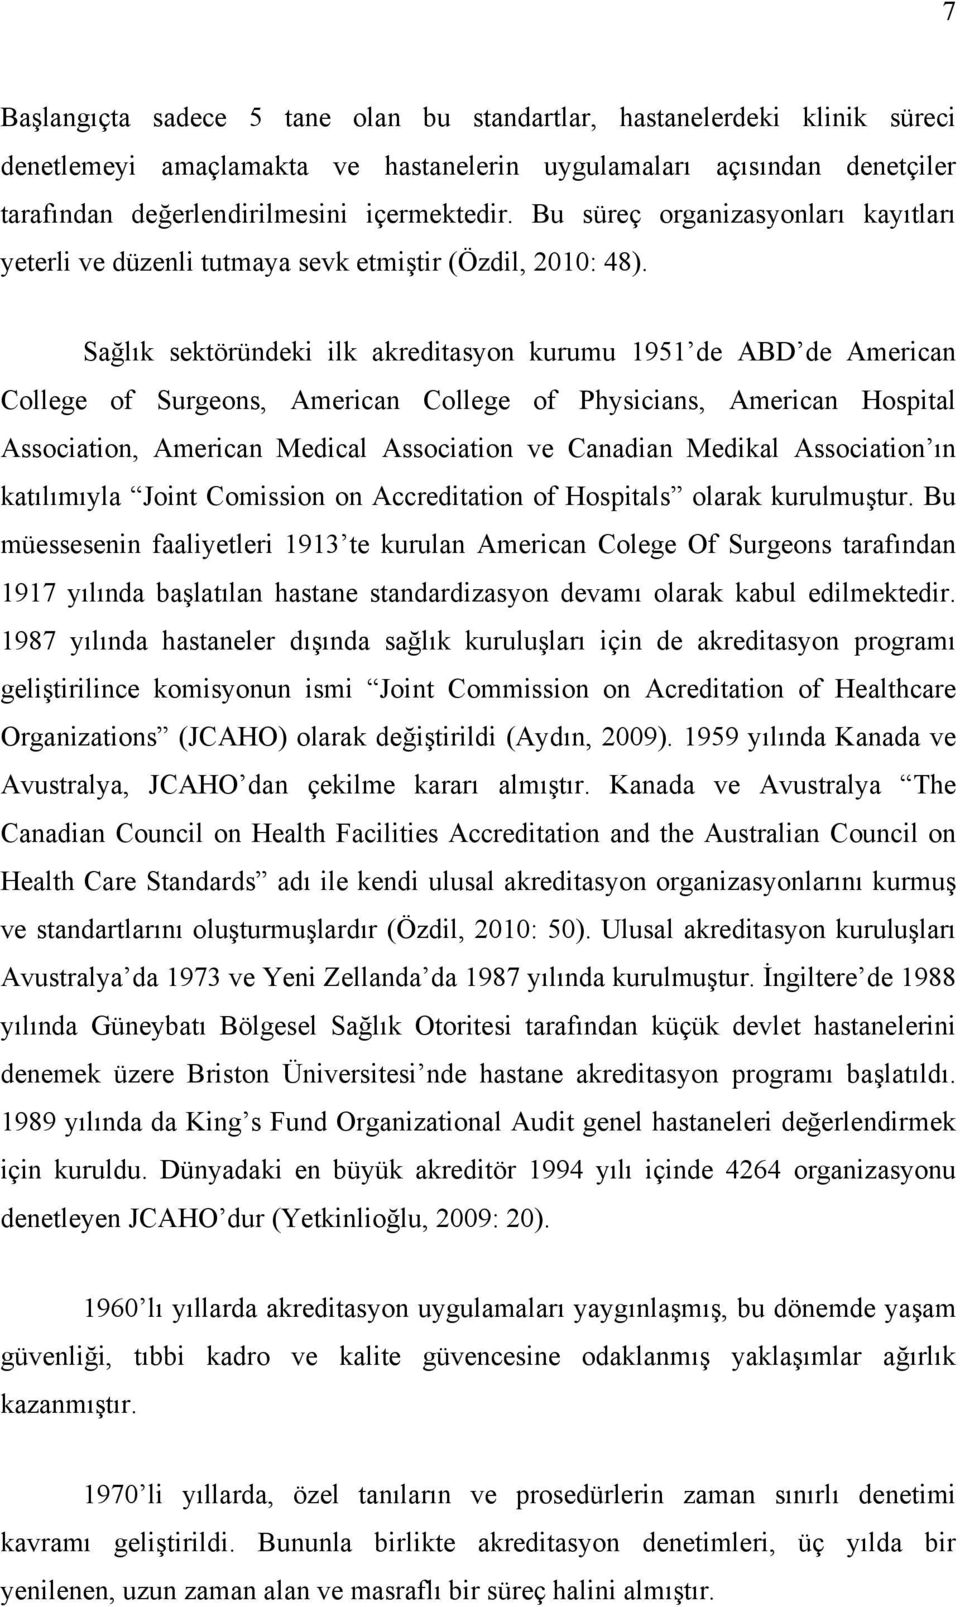 Sağlık sektöründeki ilk akreditasyon kurumu 1951 de ABD de American College of Surgeons, American College of Physicians, American Hospital Association, American Medical Association ve Canadian